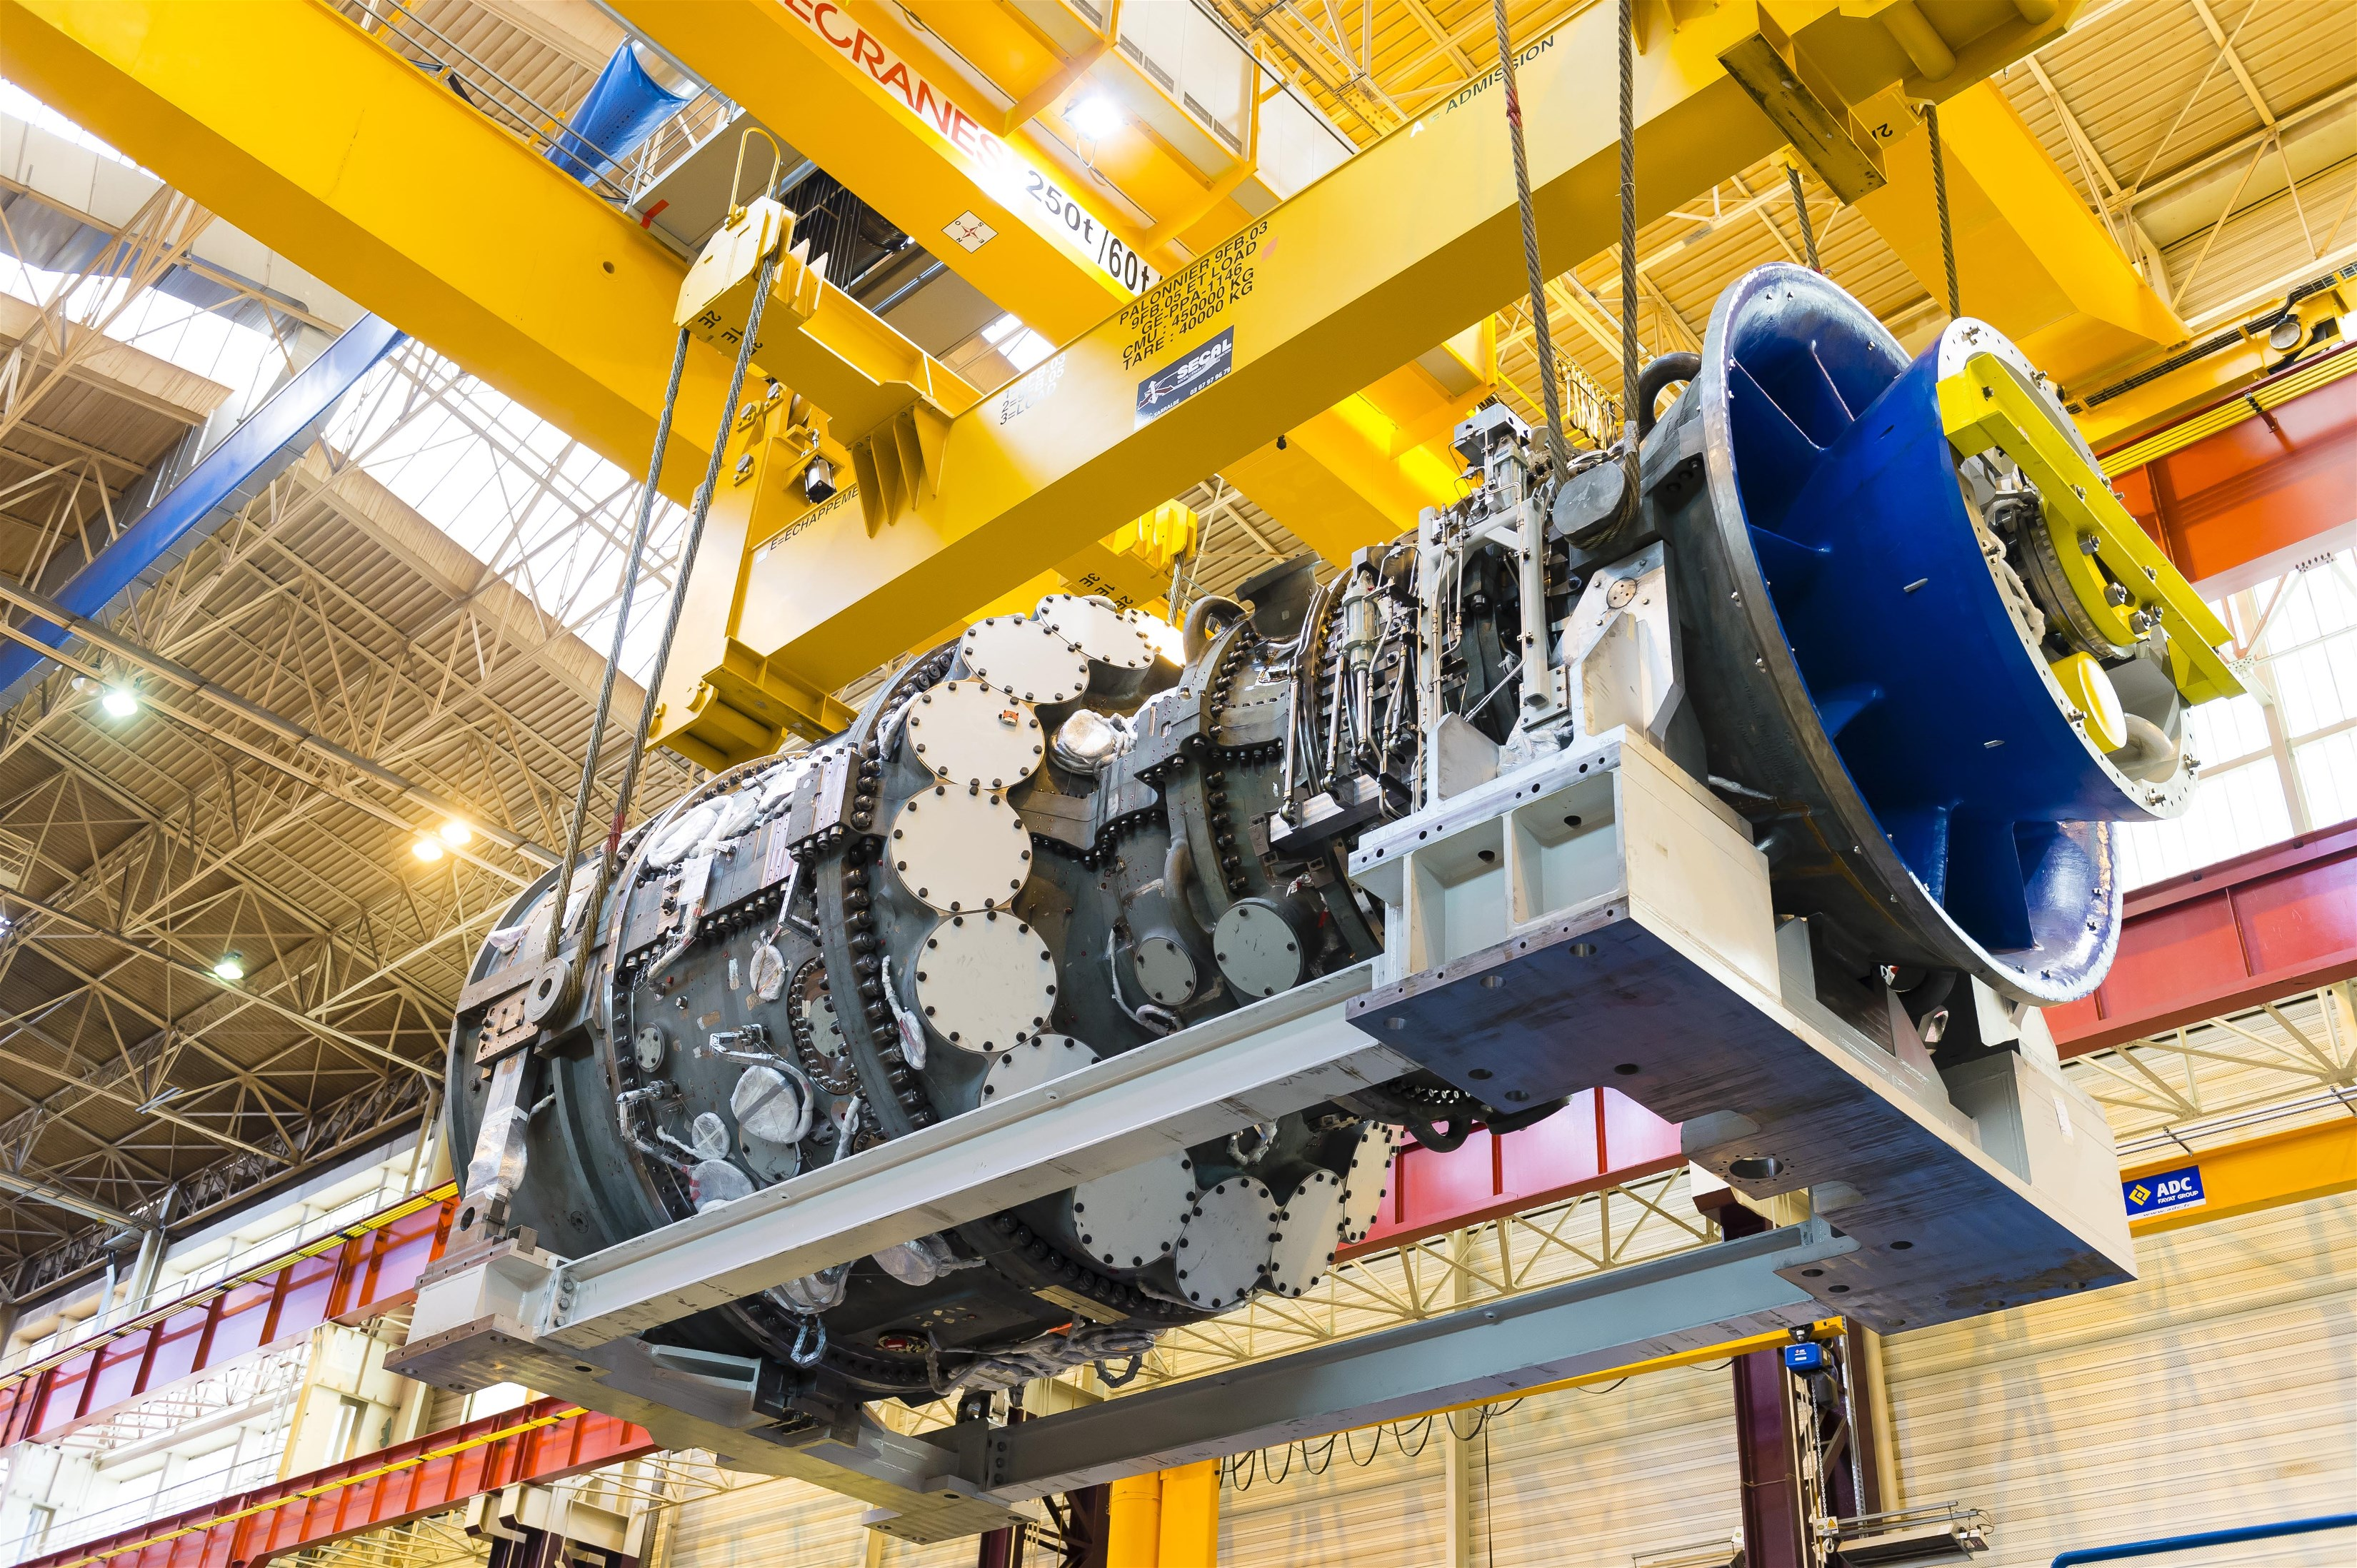 Combination of GE and Alstom Technology Proves Powerful